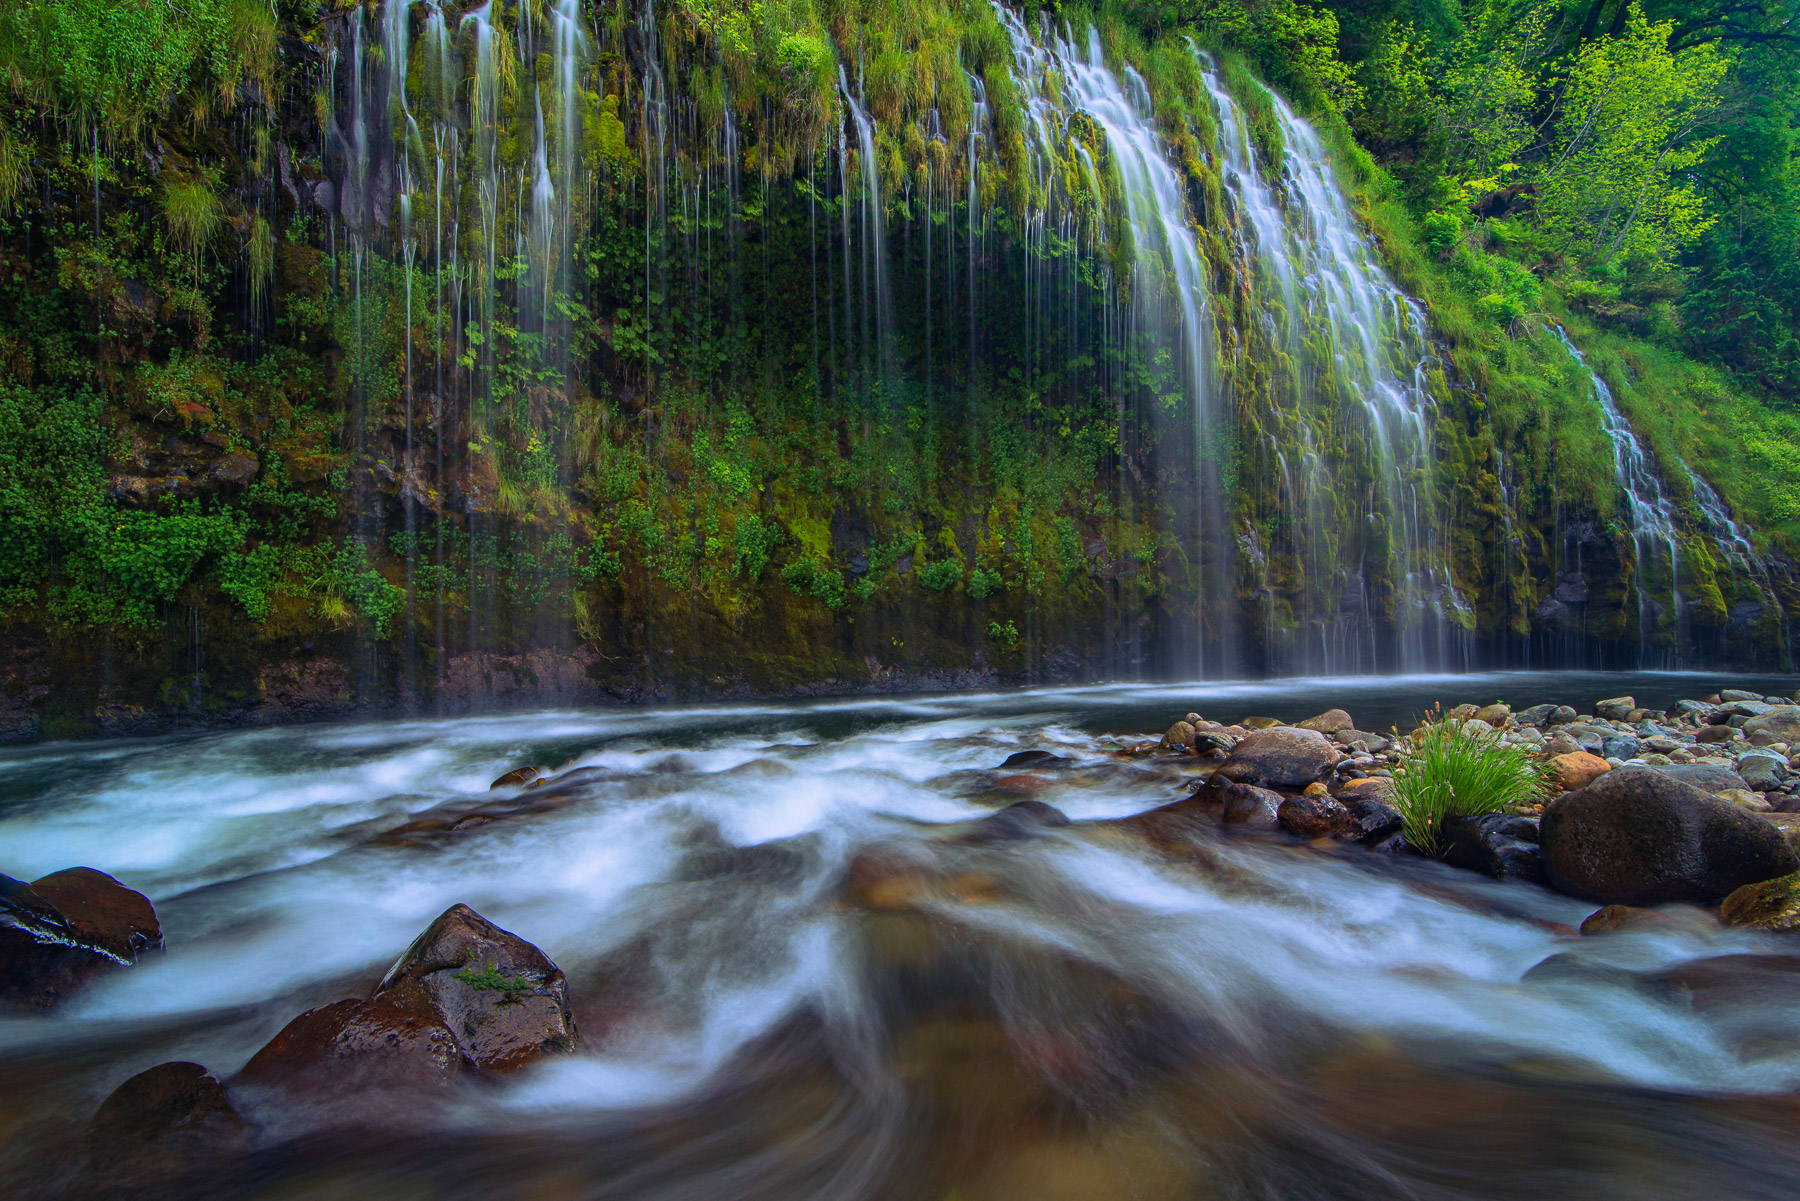 Mossbrae Falls is considered one of the most scenic waterfalls in California. And for good reason. There are multiple layers...